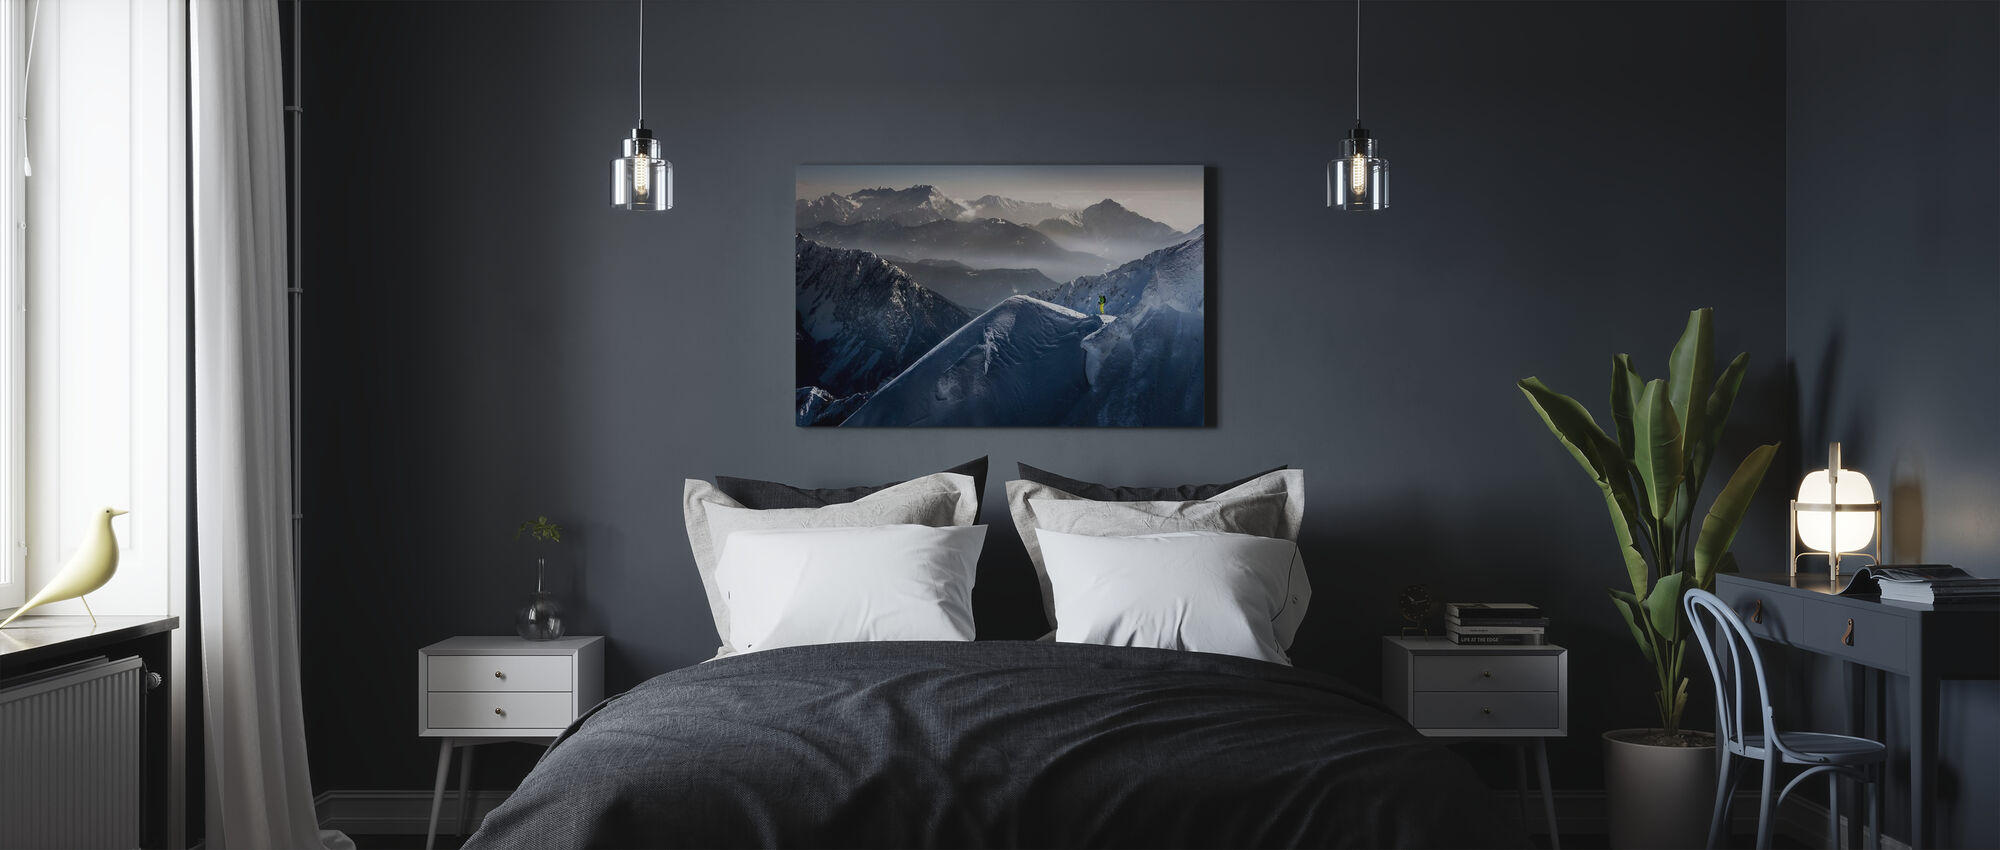 Skier on Mountain Top - Canvas print - Bedroom